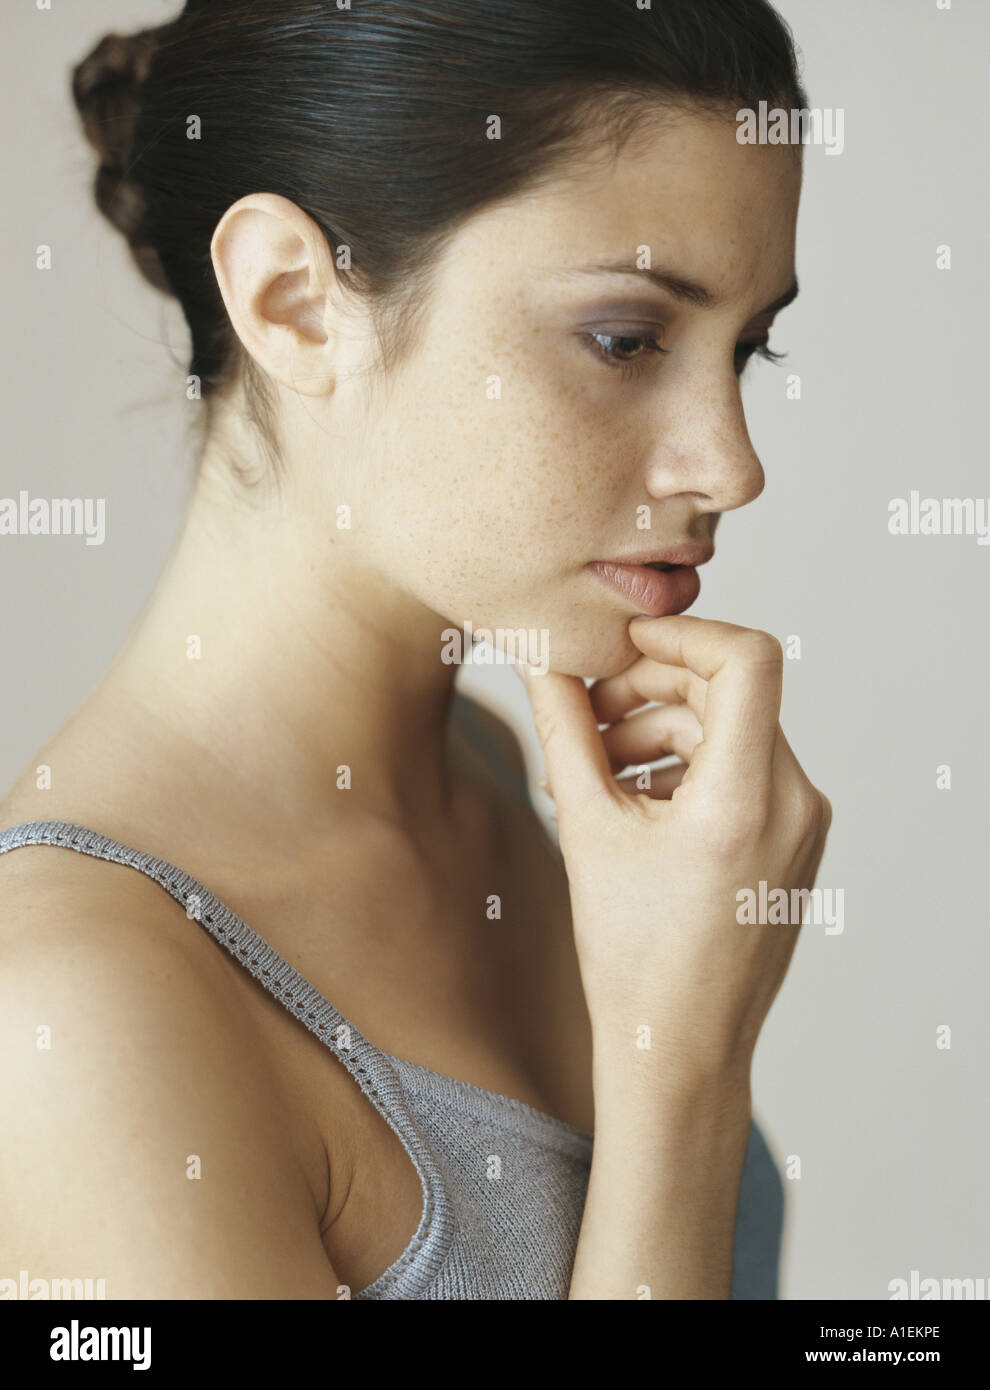 Woman with hand under chin, portrait - Stock Image